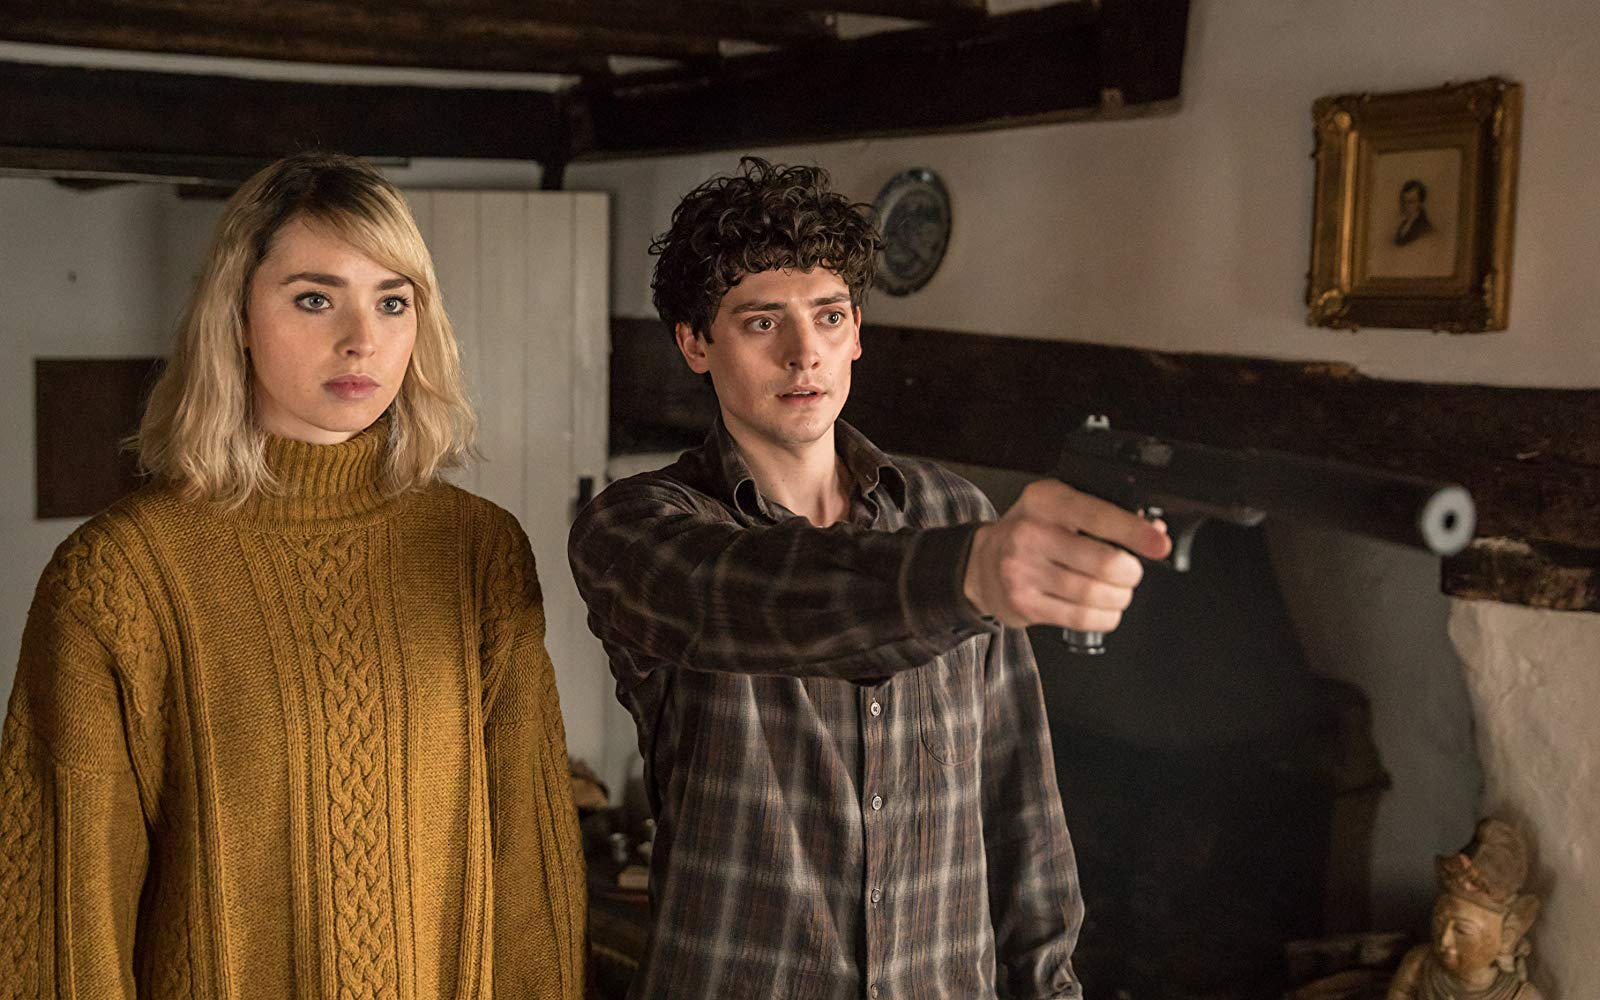 A still from the film featuring Freya Mavor as Ellie and Aneurin Barnard as William. (Image Source: IMDB)